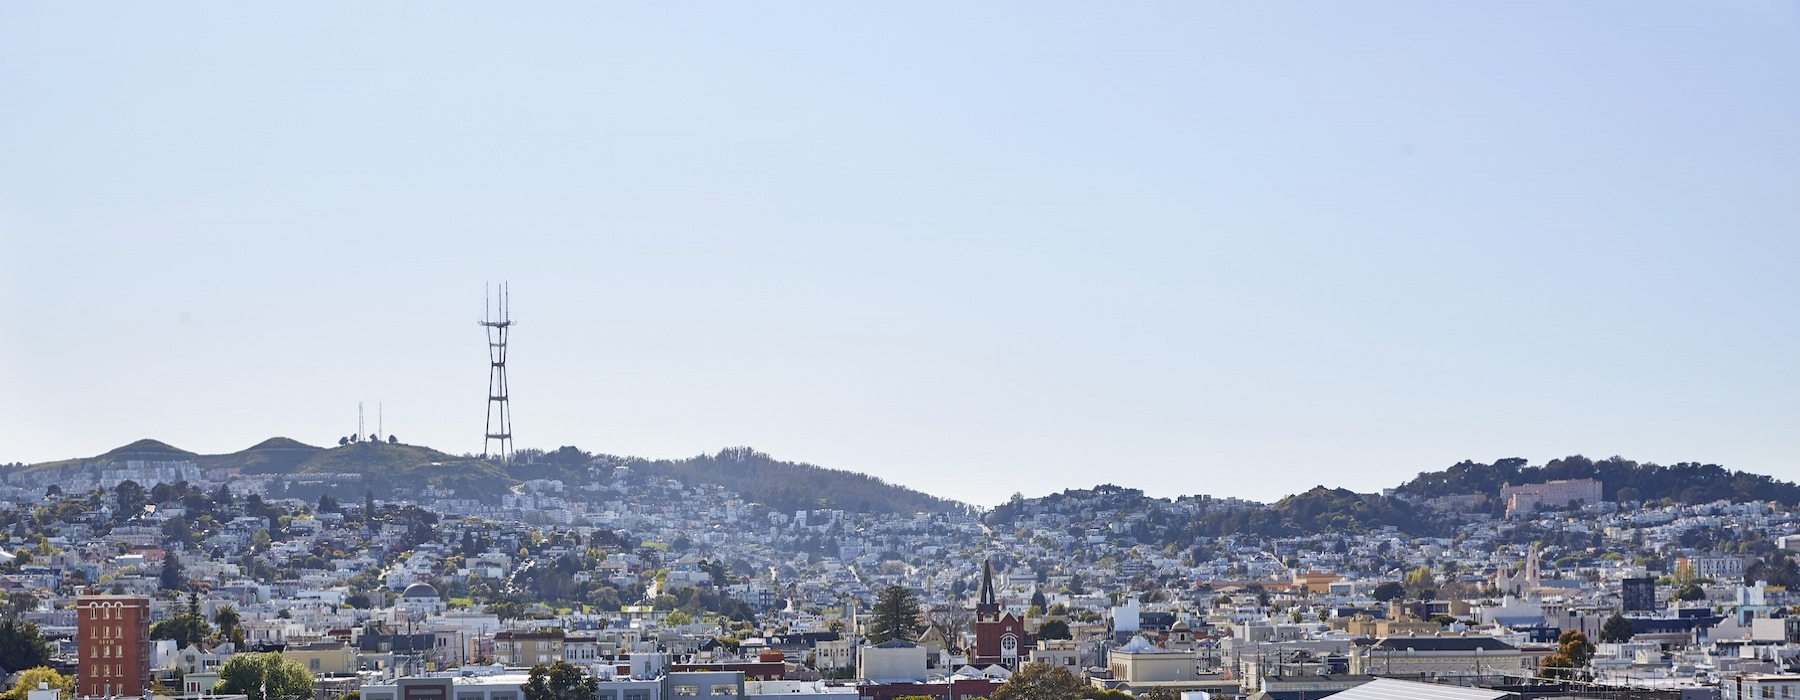 Skyline views of The Mission and Castro District with Sutro Tower in the distance